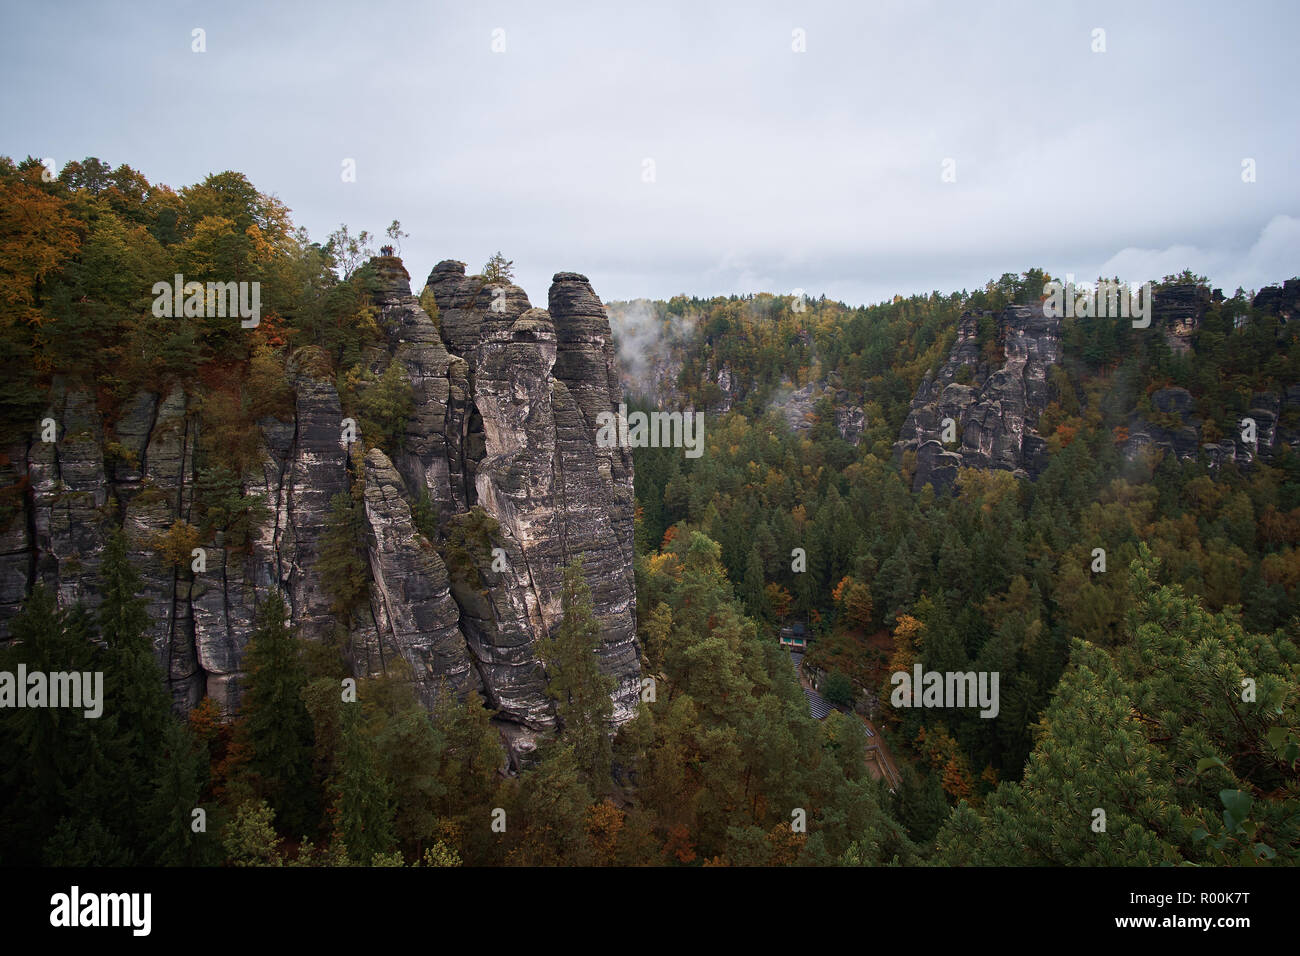 Page 2 Narnia Landscape High Resolution Stock Photography And Images Alamy